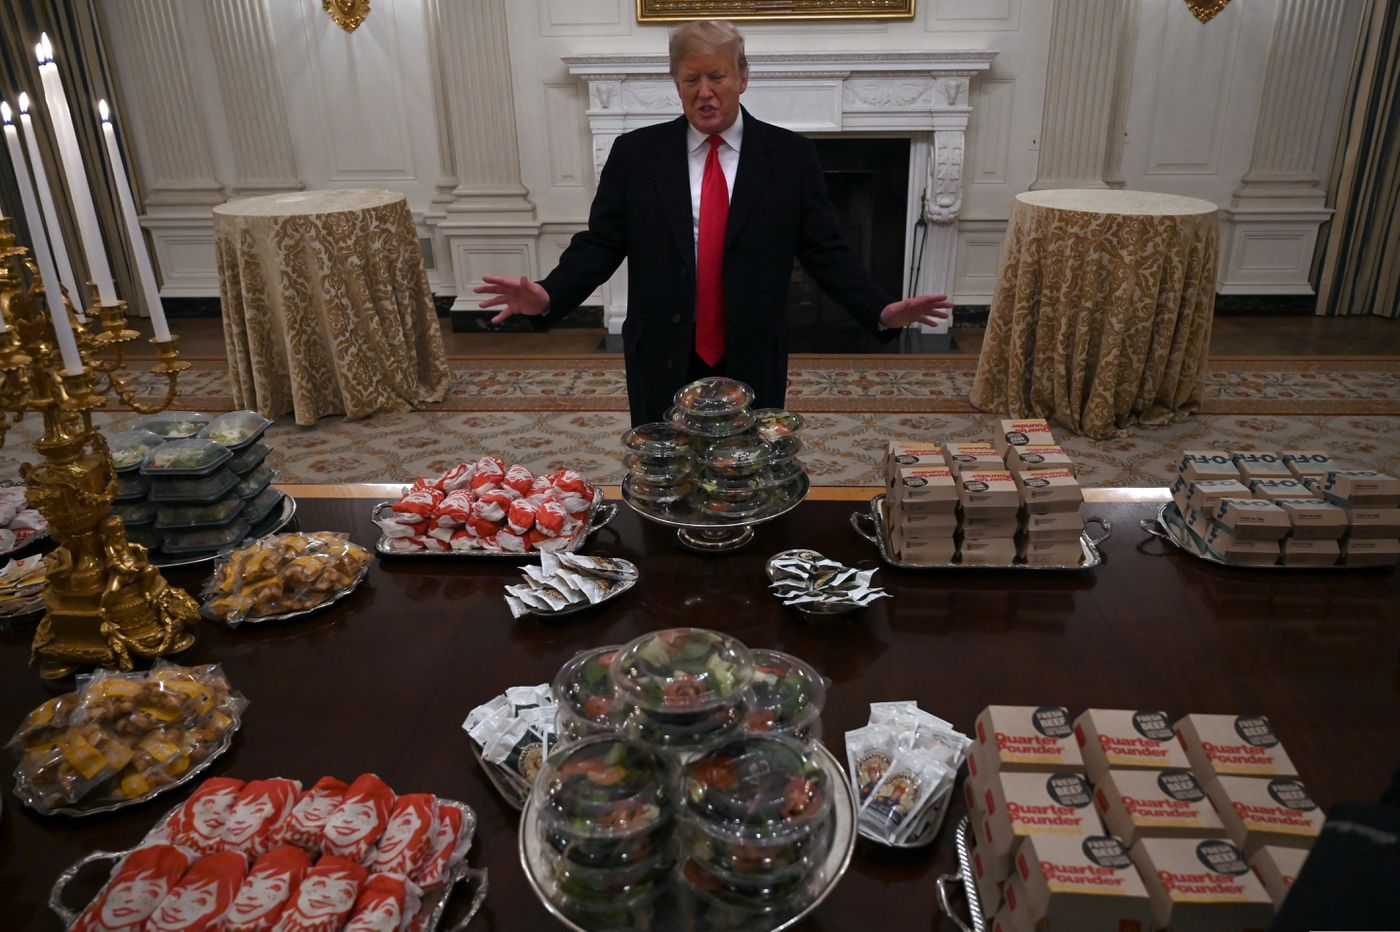 White House offers Clemson Tigers fast food feast in championship celebration